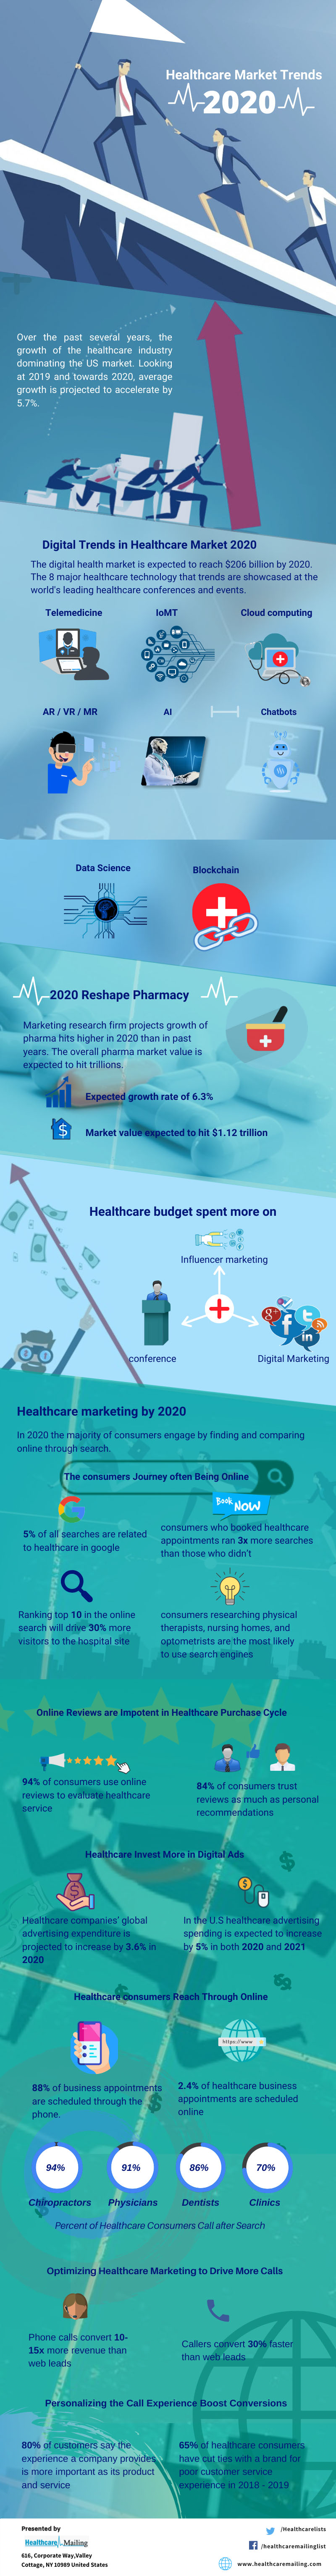 Healthcare 2020: Customer Service and Last-Mile Delivery Trends - Infographic